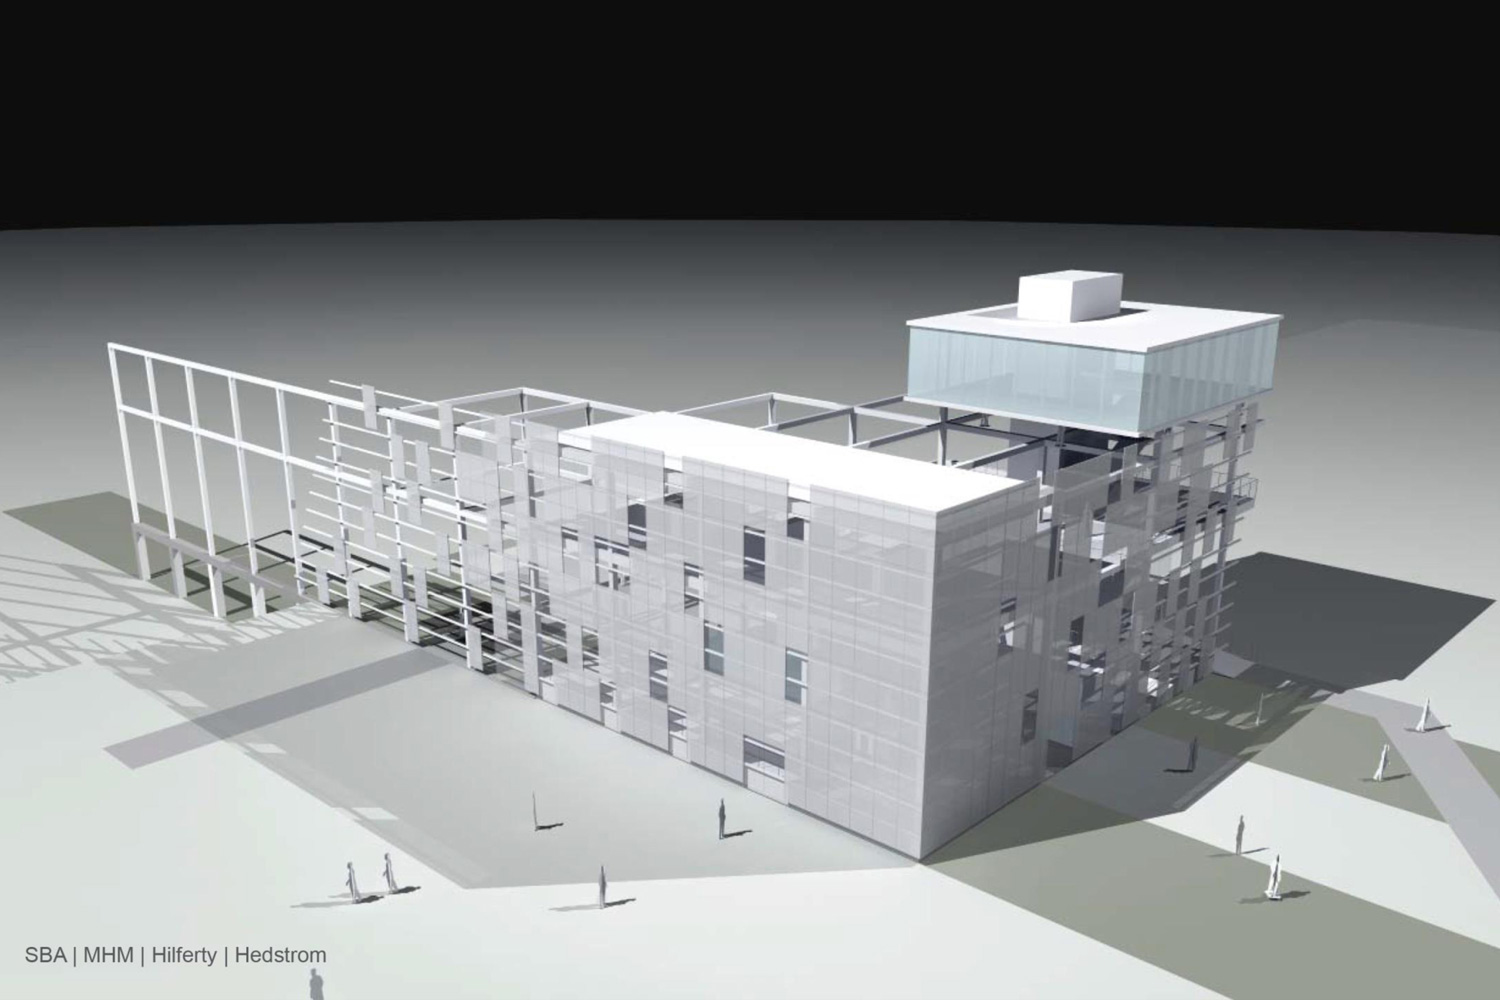 K-25 Equipment Building - Viewing Tower (Front View Rendering)